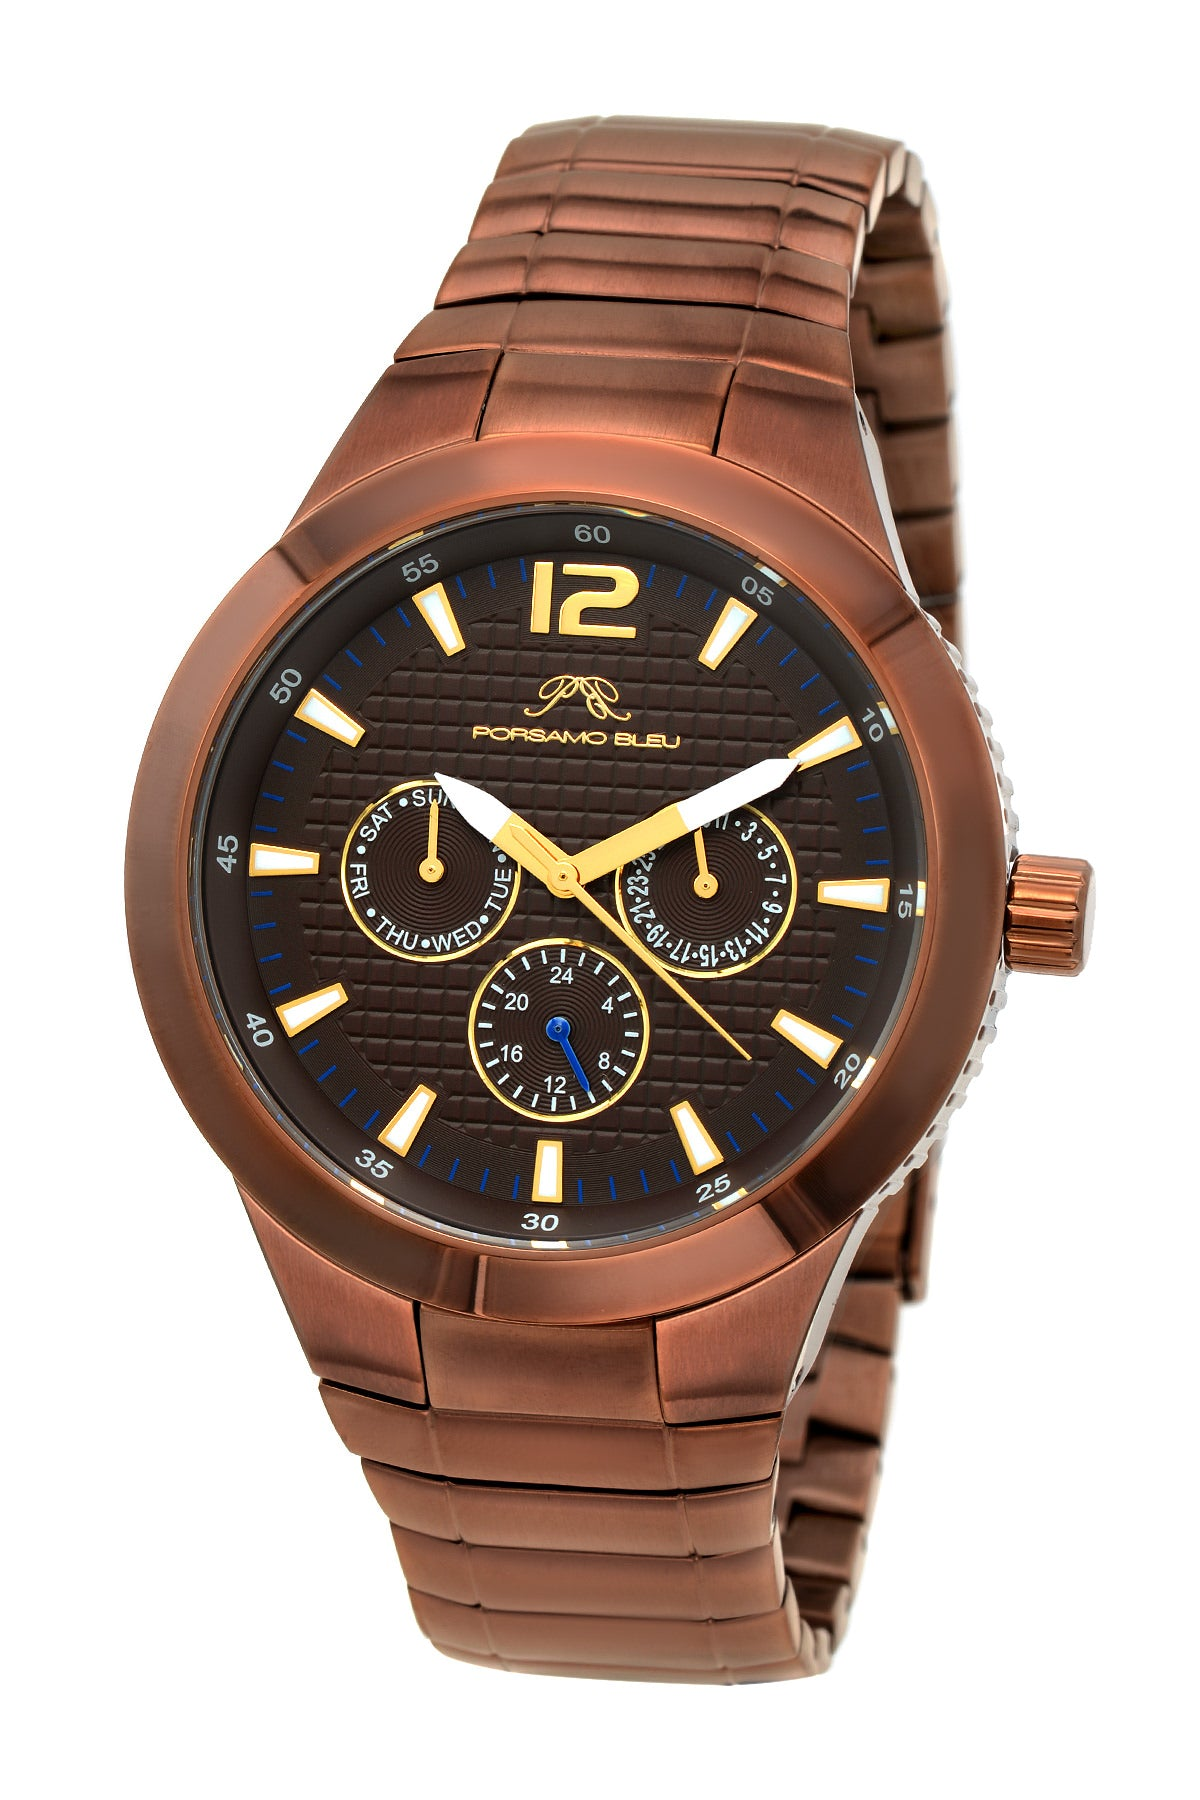 Porsamo Bleu Luca luxury men's stainless steel watch, brown, black 531ELUS